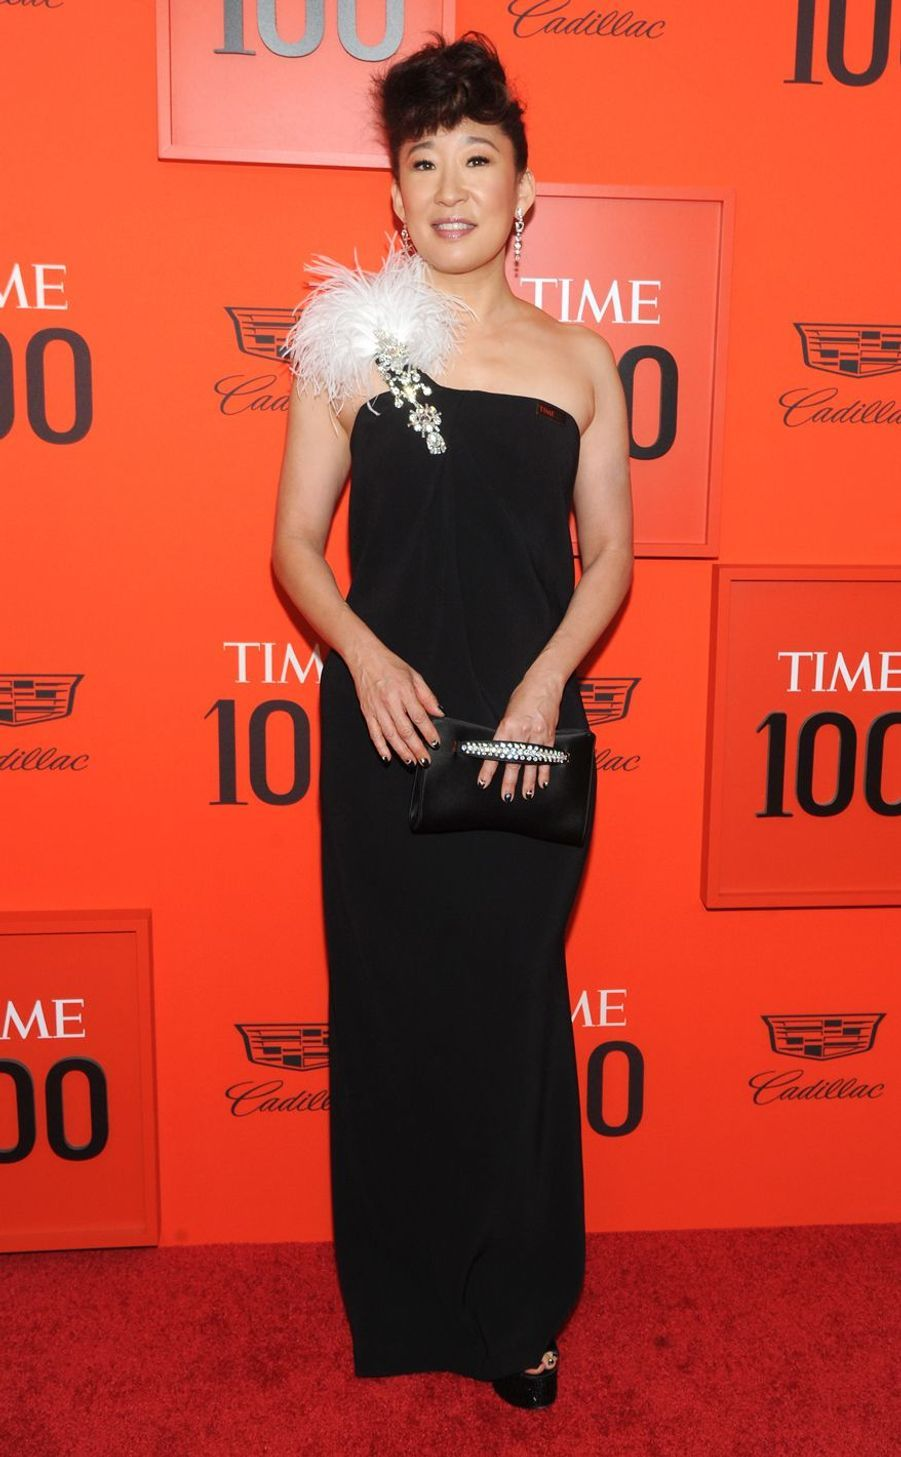 Sandra Oh au Time 100 Gala à New York le 23 avril 2019